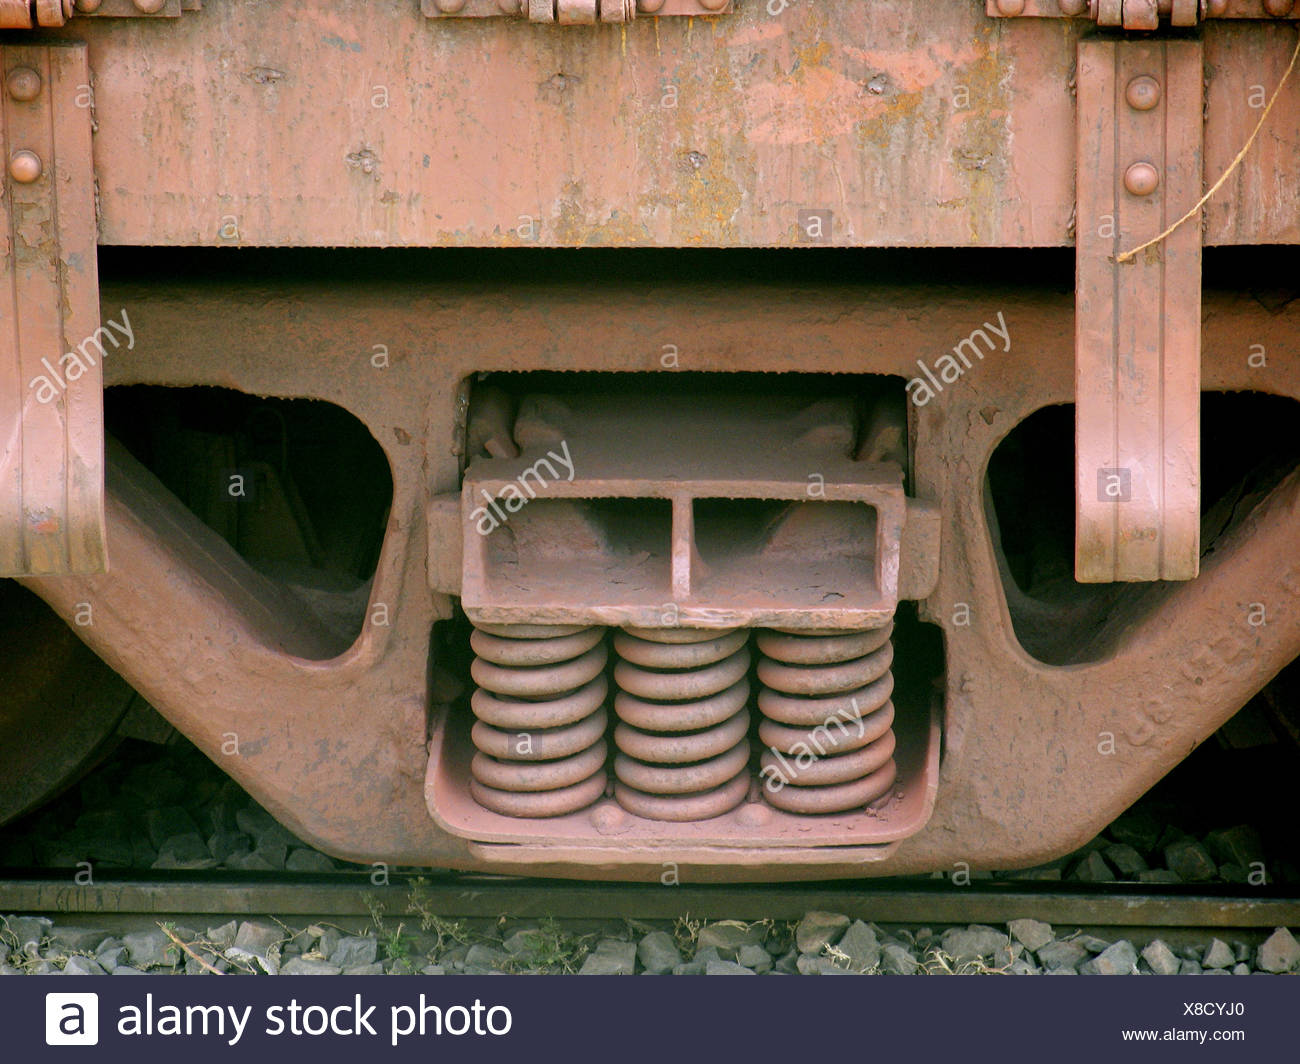 Shock absorbers of a goods transports train, Pune, Maharashtra, India. - Stock Image